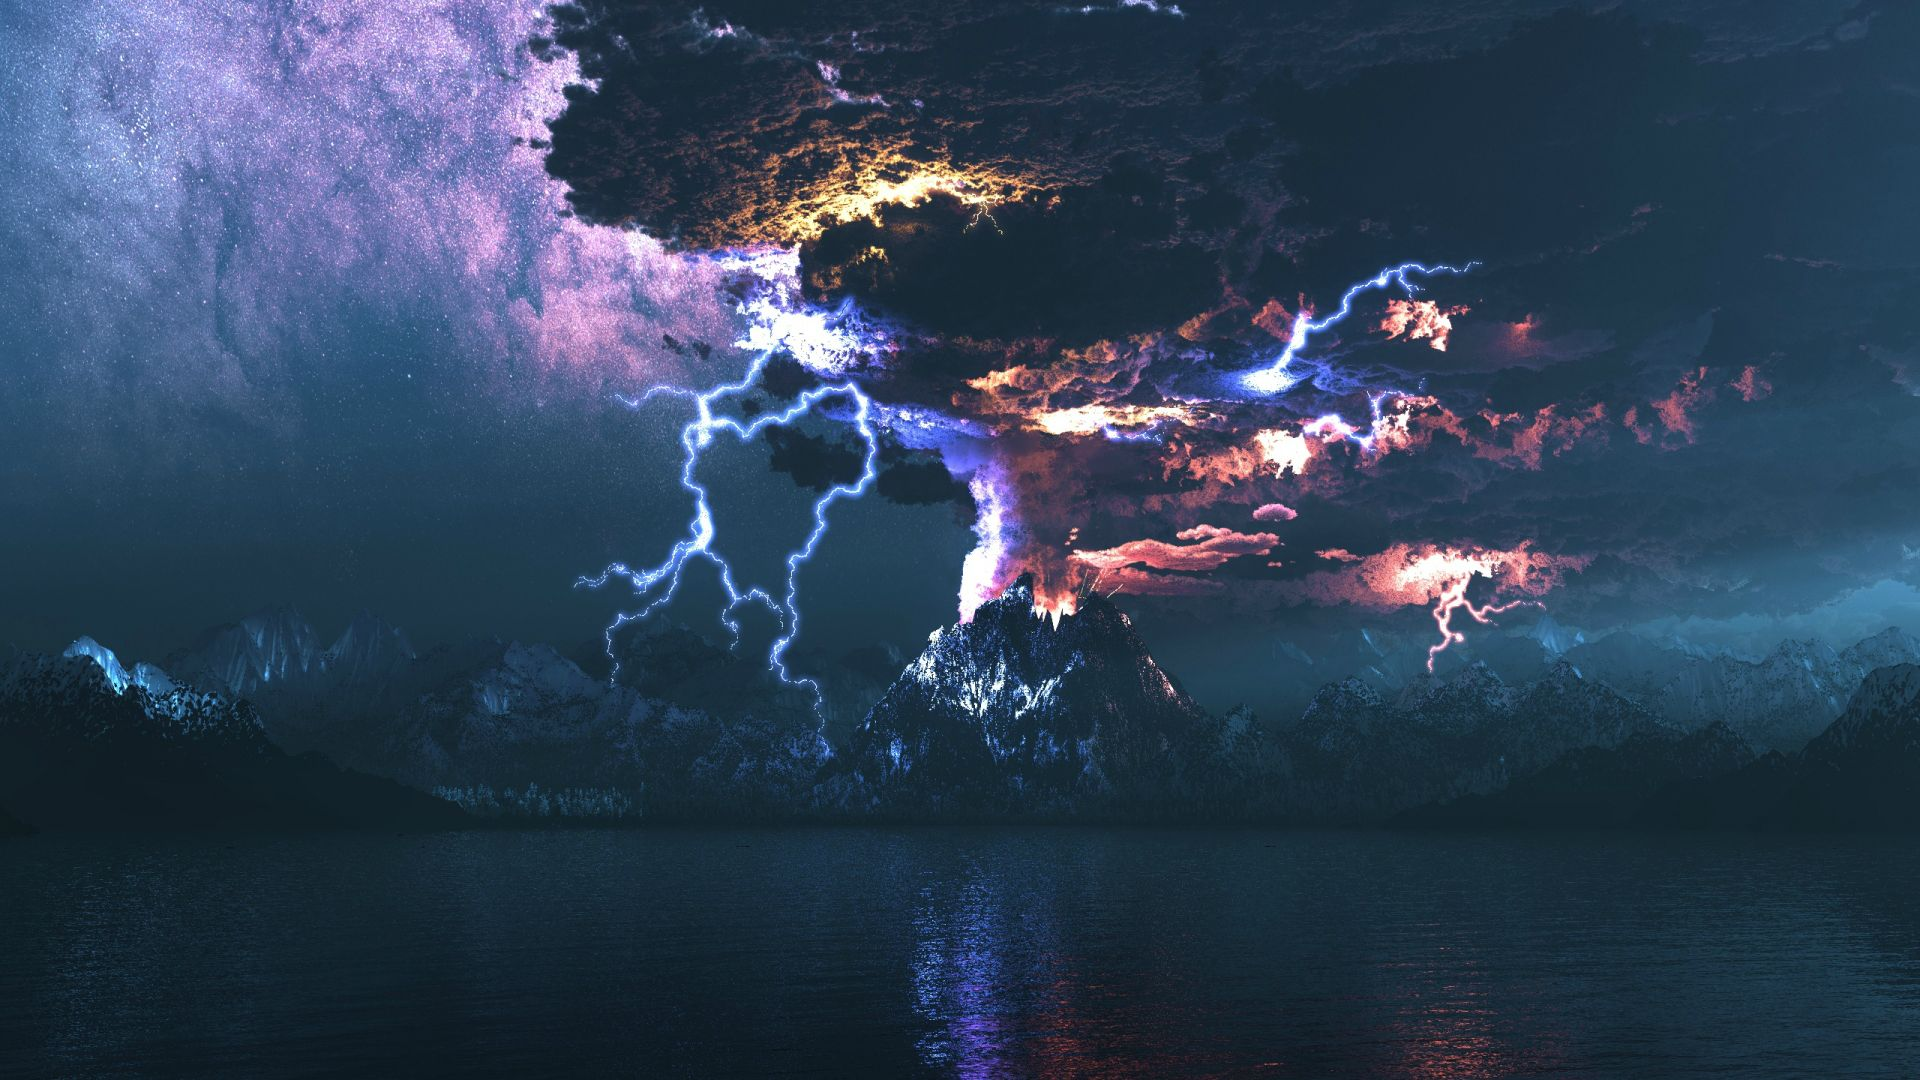 landscape wallpaper thunder